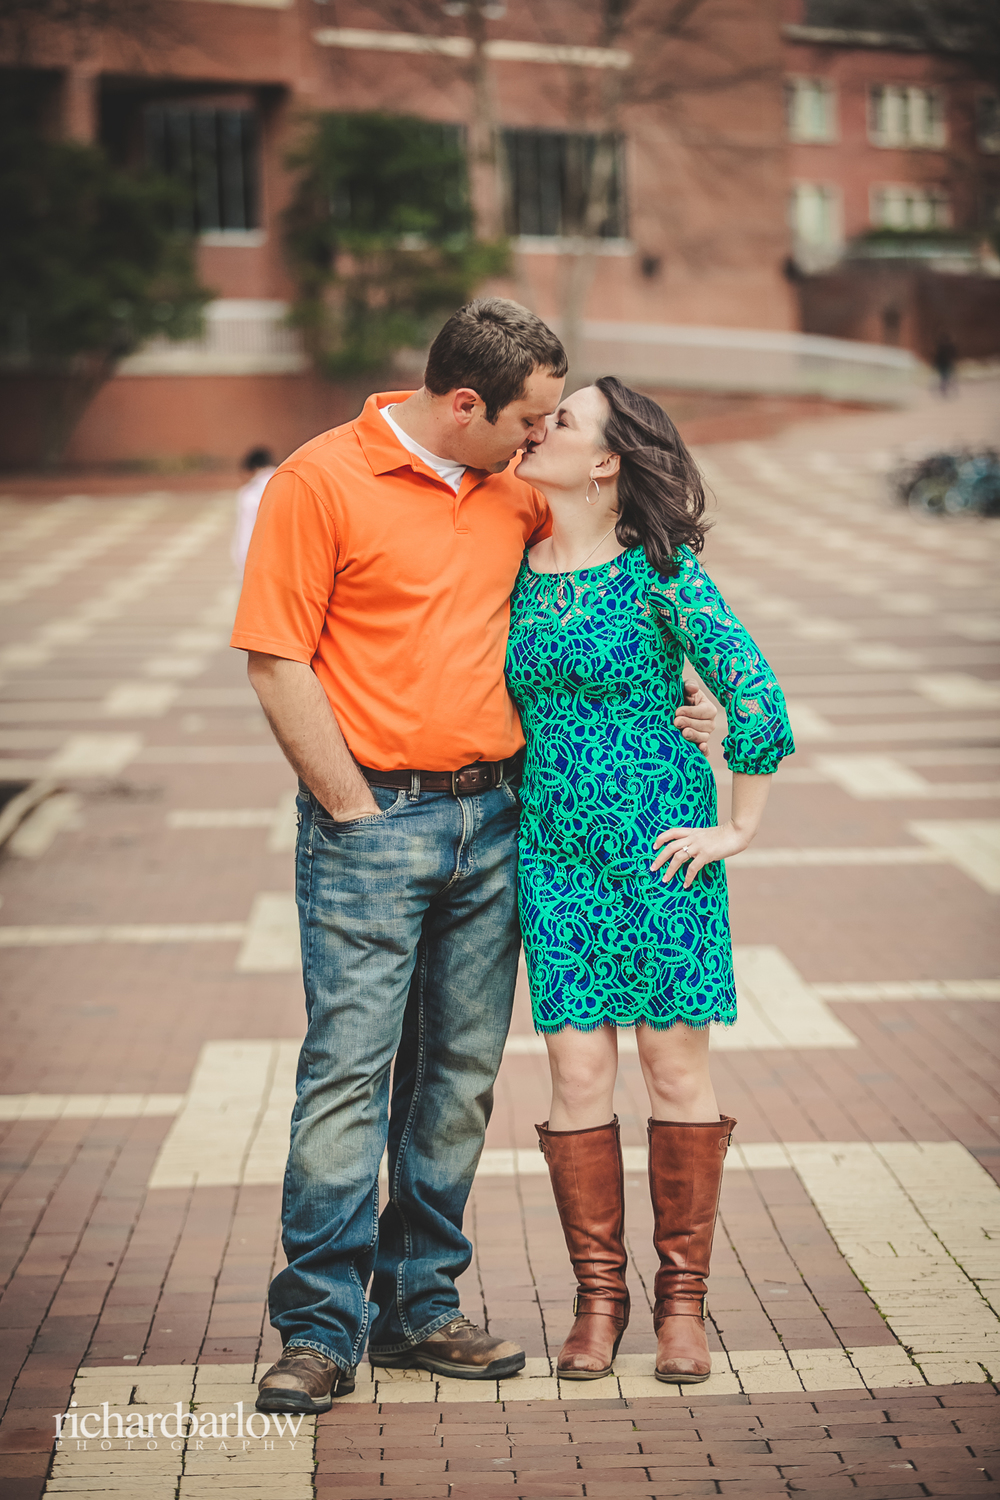 richard barlow photography - Jason and Karen Engagement Session NC State-8.jpg